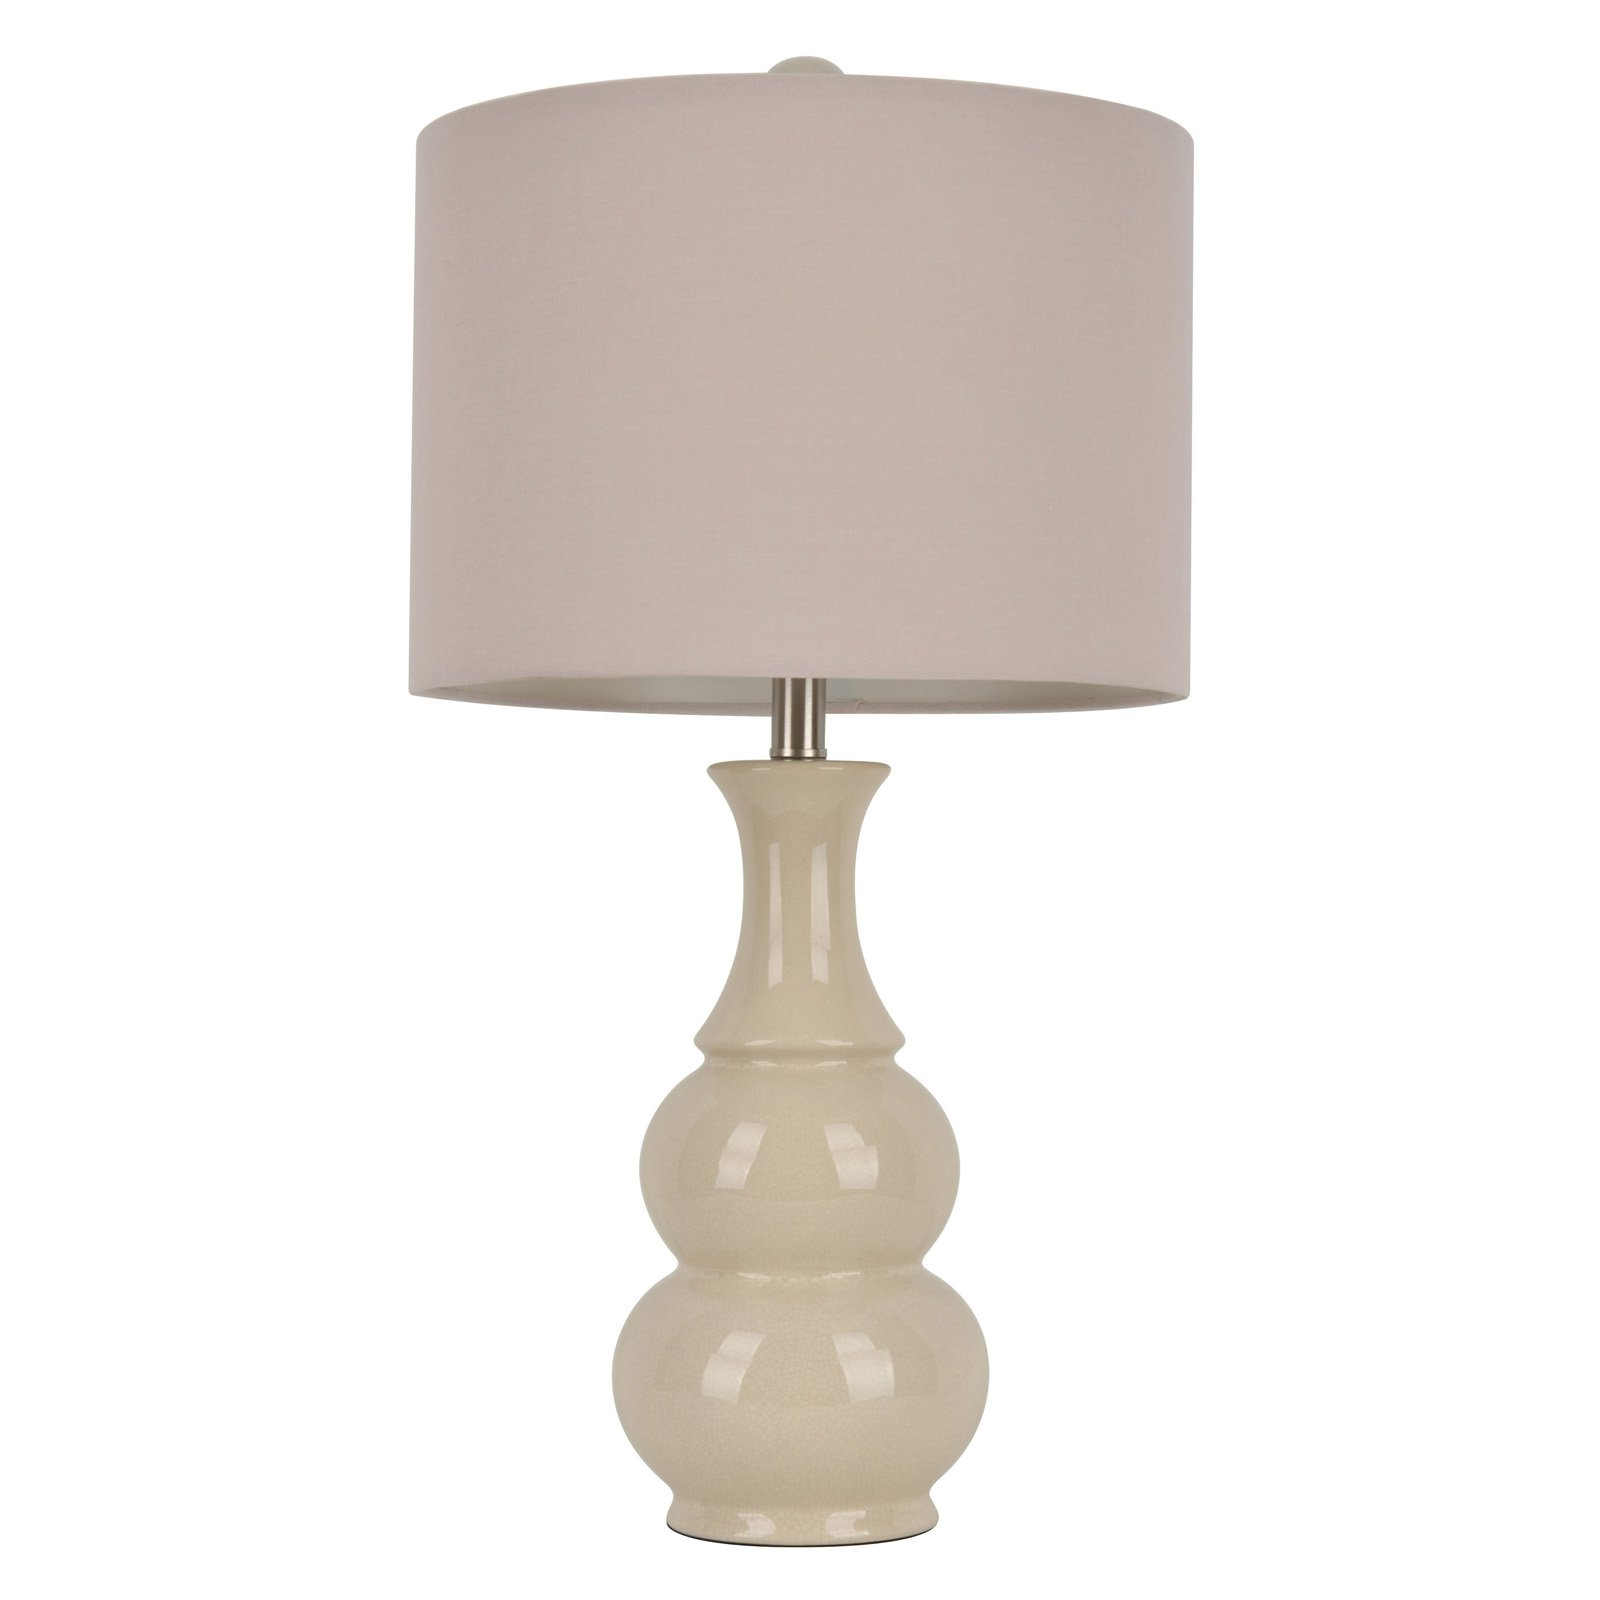 Ivory Crackle Double Gourd Ceramic Table Lamp by Jimco Lamp & Manufacturing